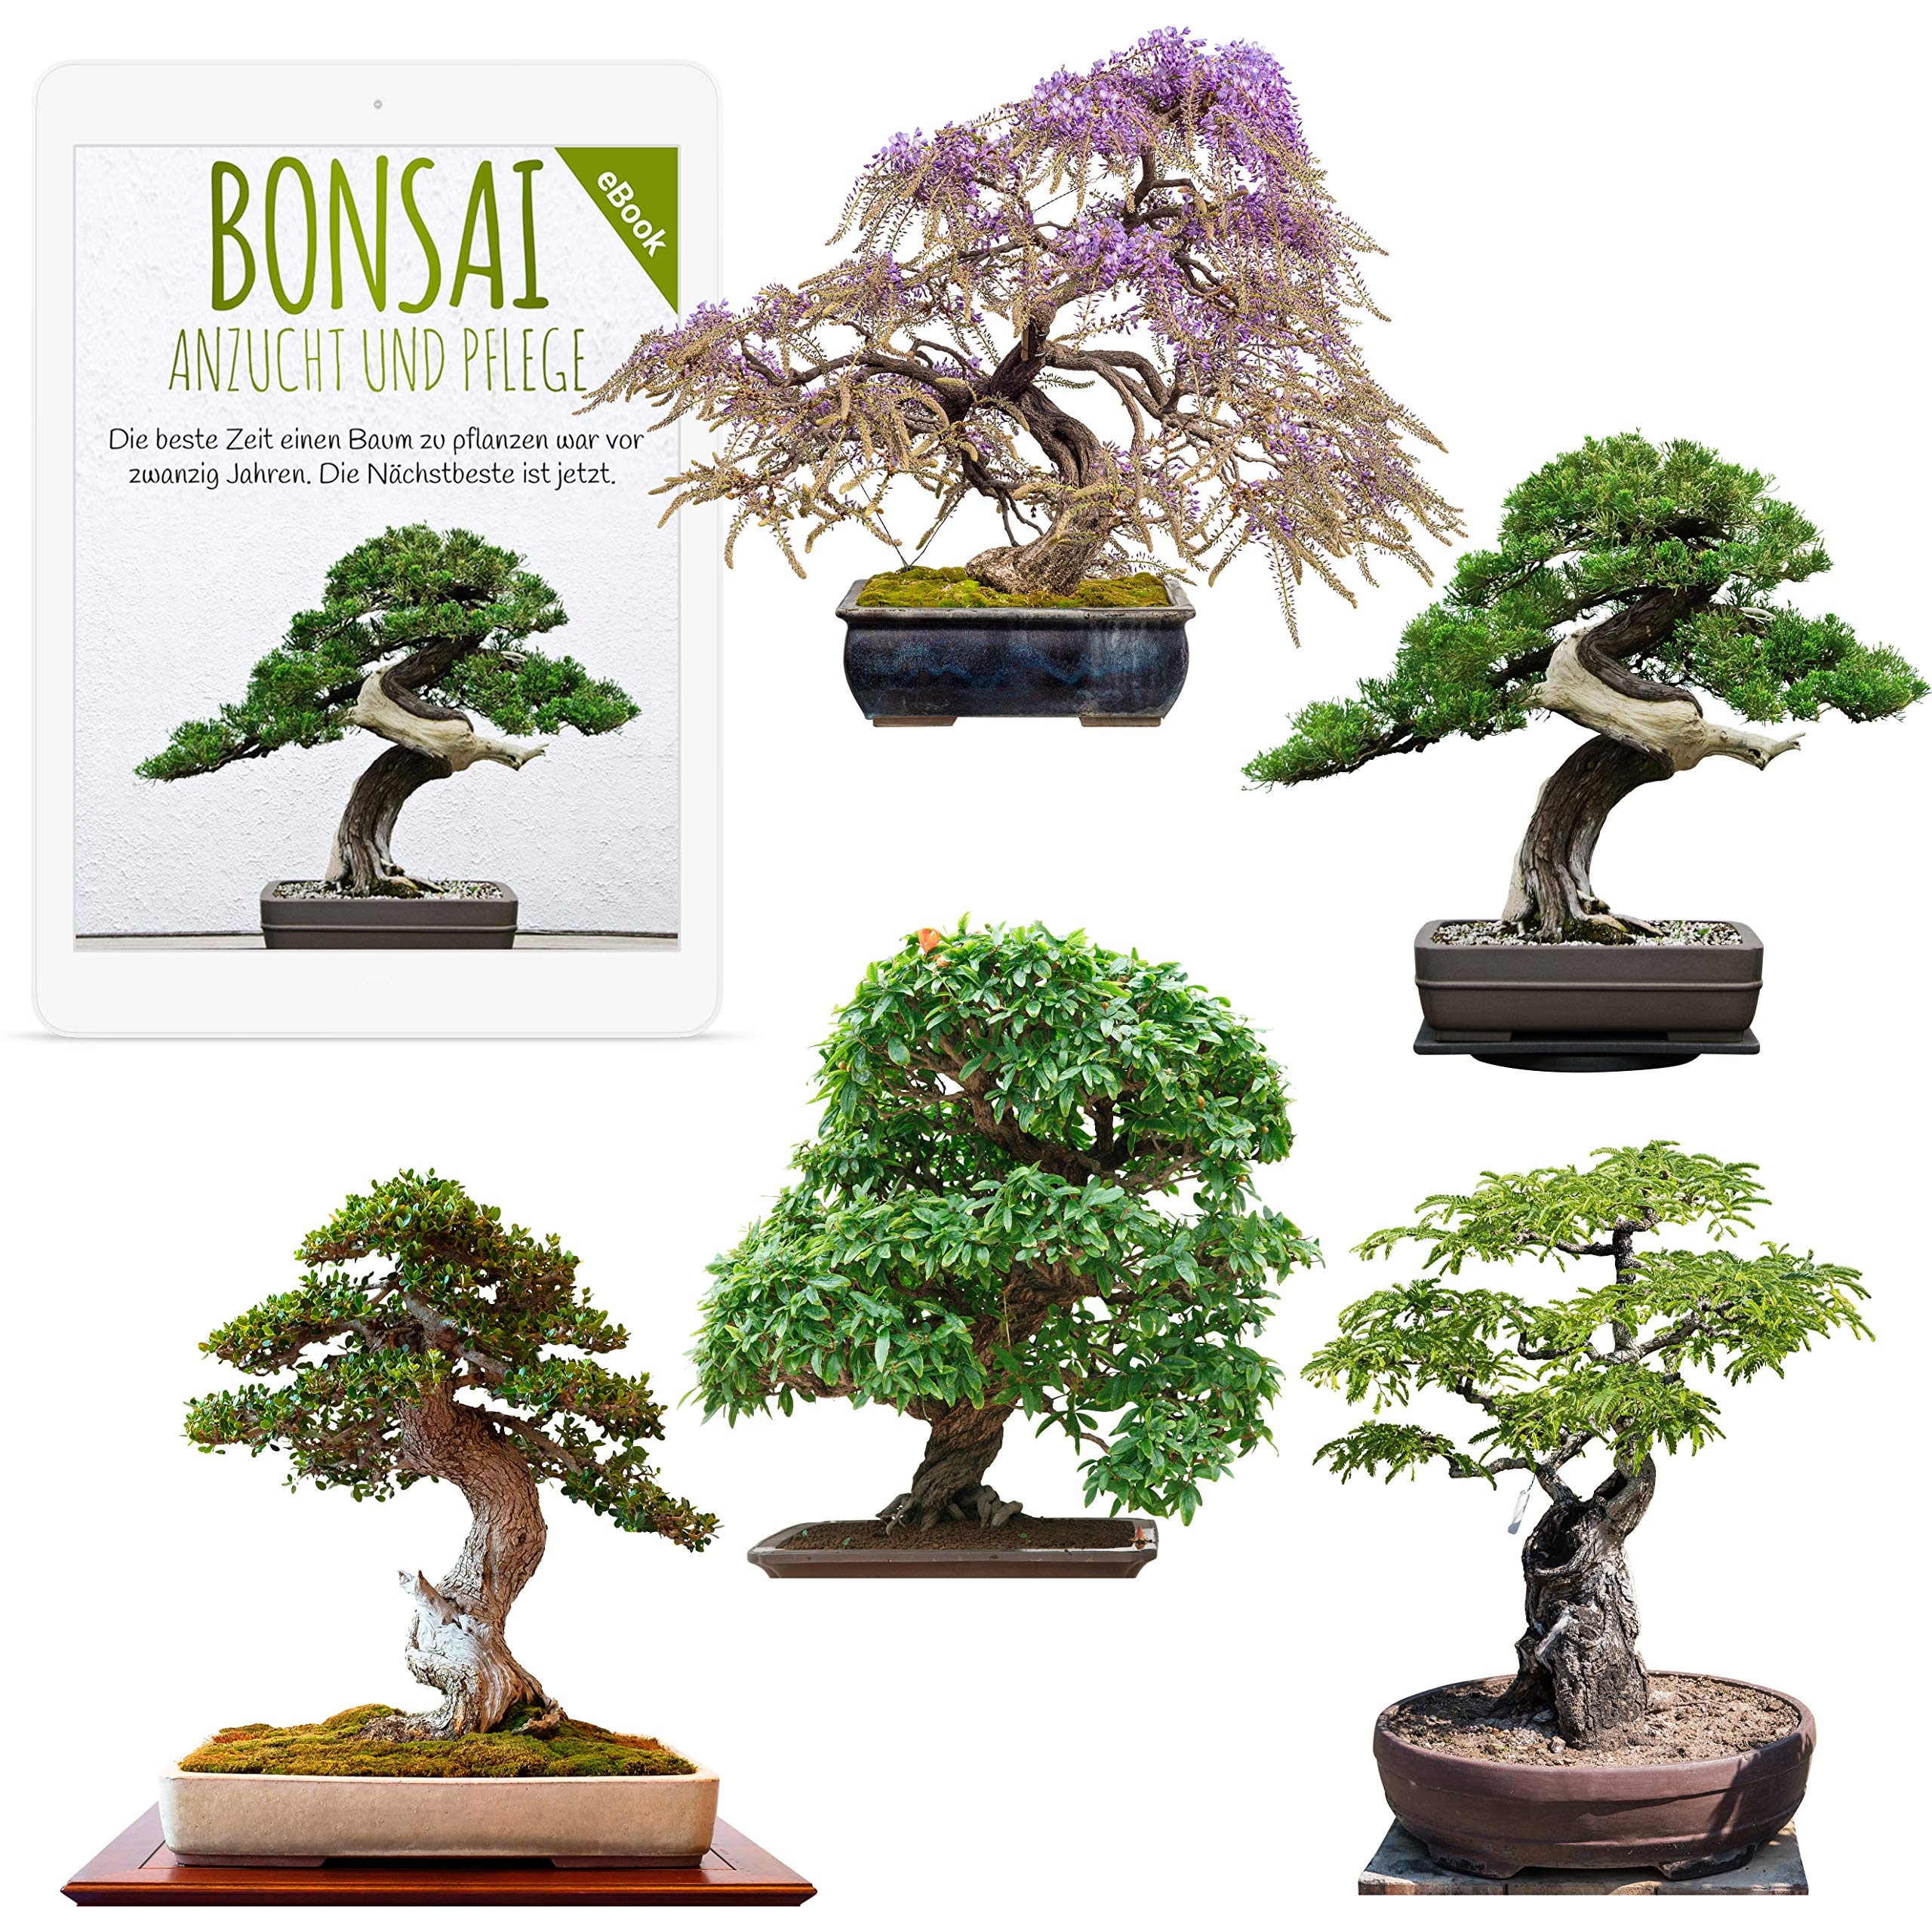 Exotic Bonsai Seeds With High Germination Rate Plant Seed Set For Your Own Bonsai Tree Mix Of 5 Incl Free Ebook Buy Online In Aruba At Desertcart Productid 130111881